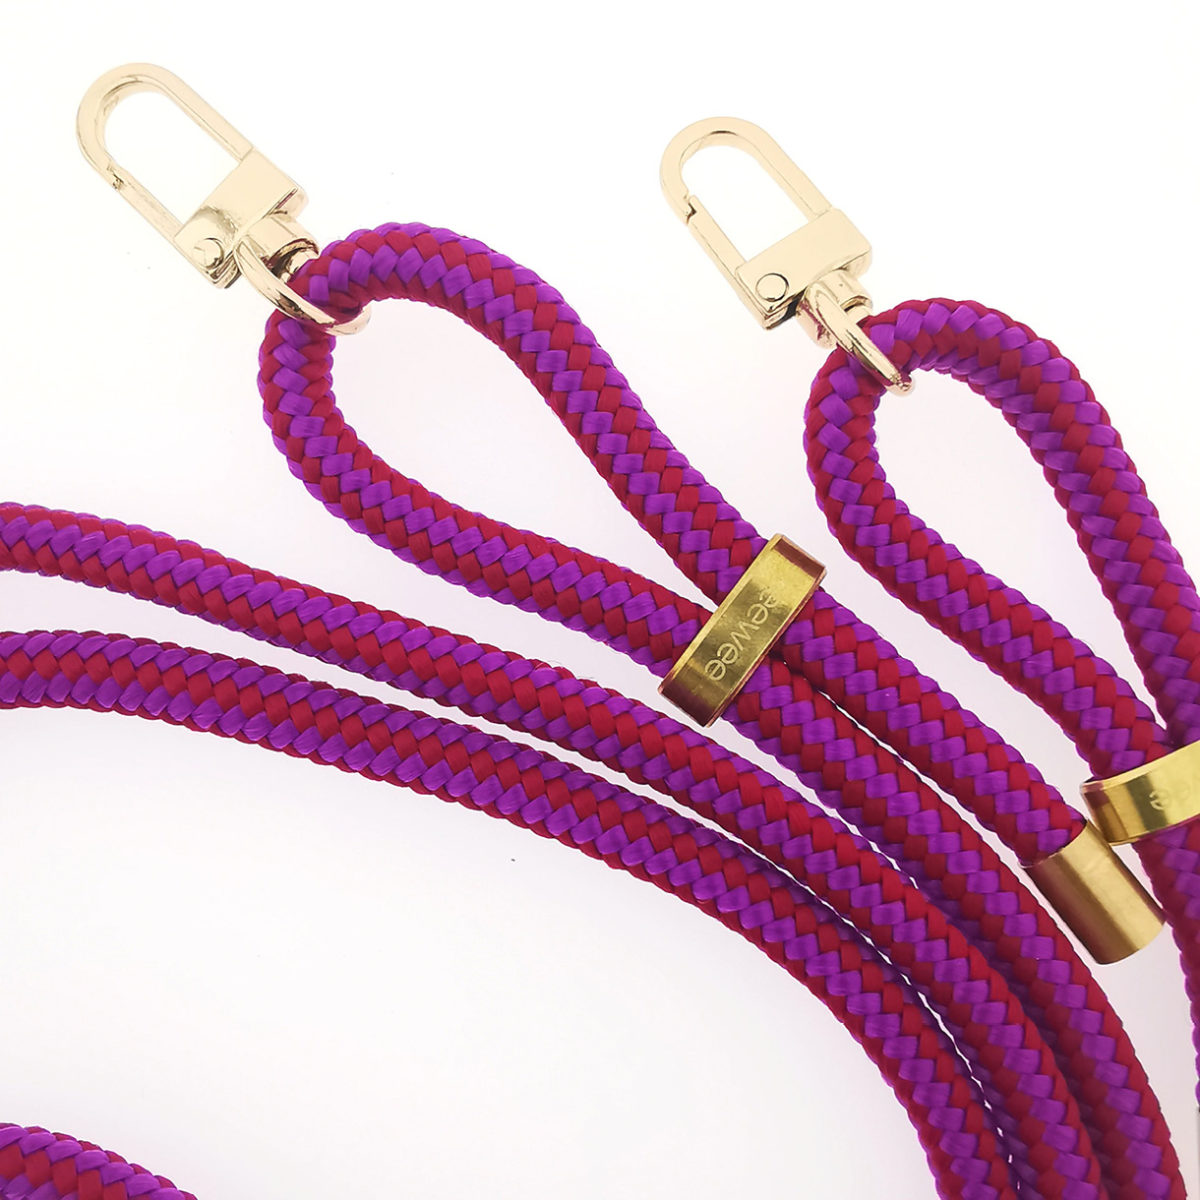 keeweestyle handykette wechselband berry snap gold2